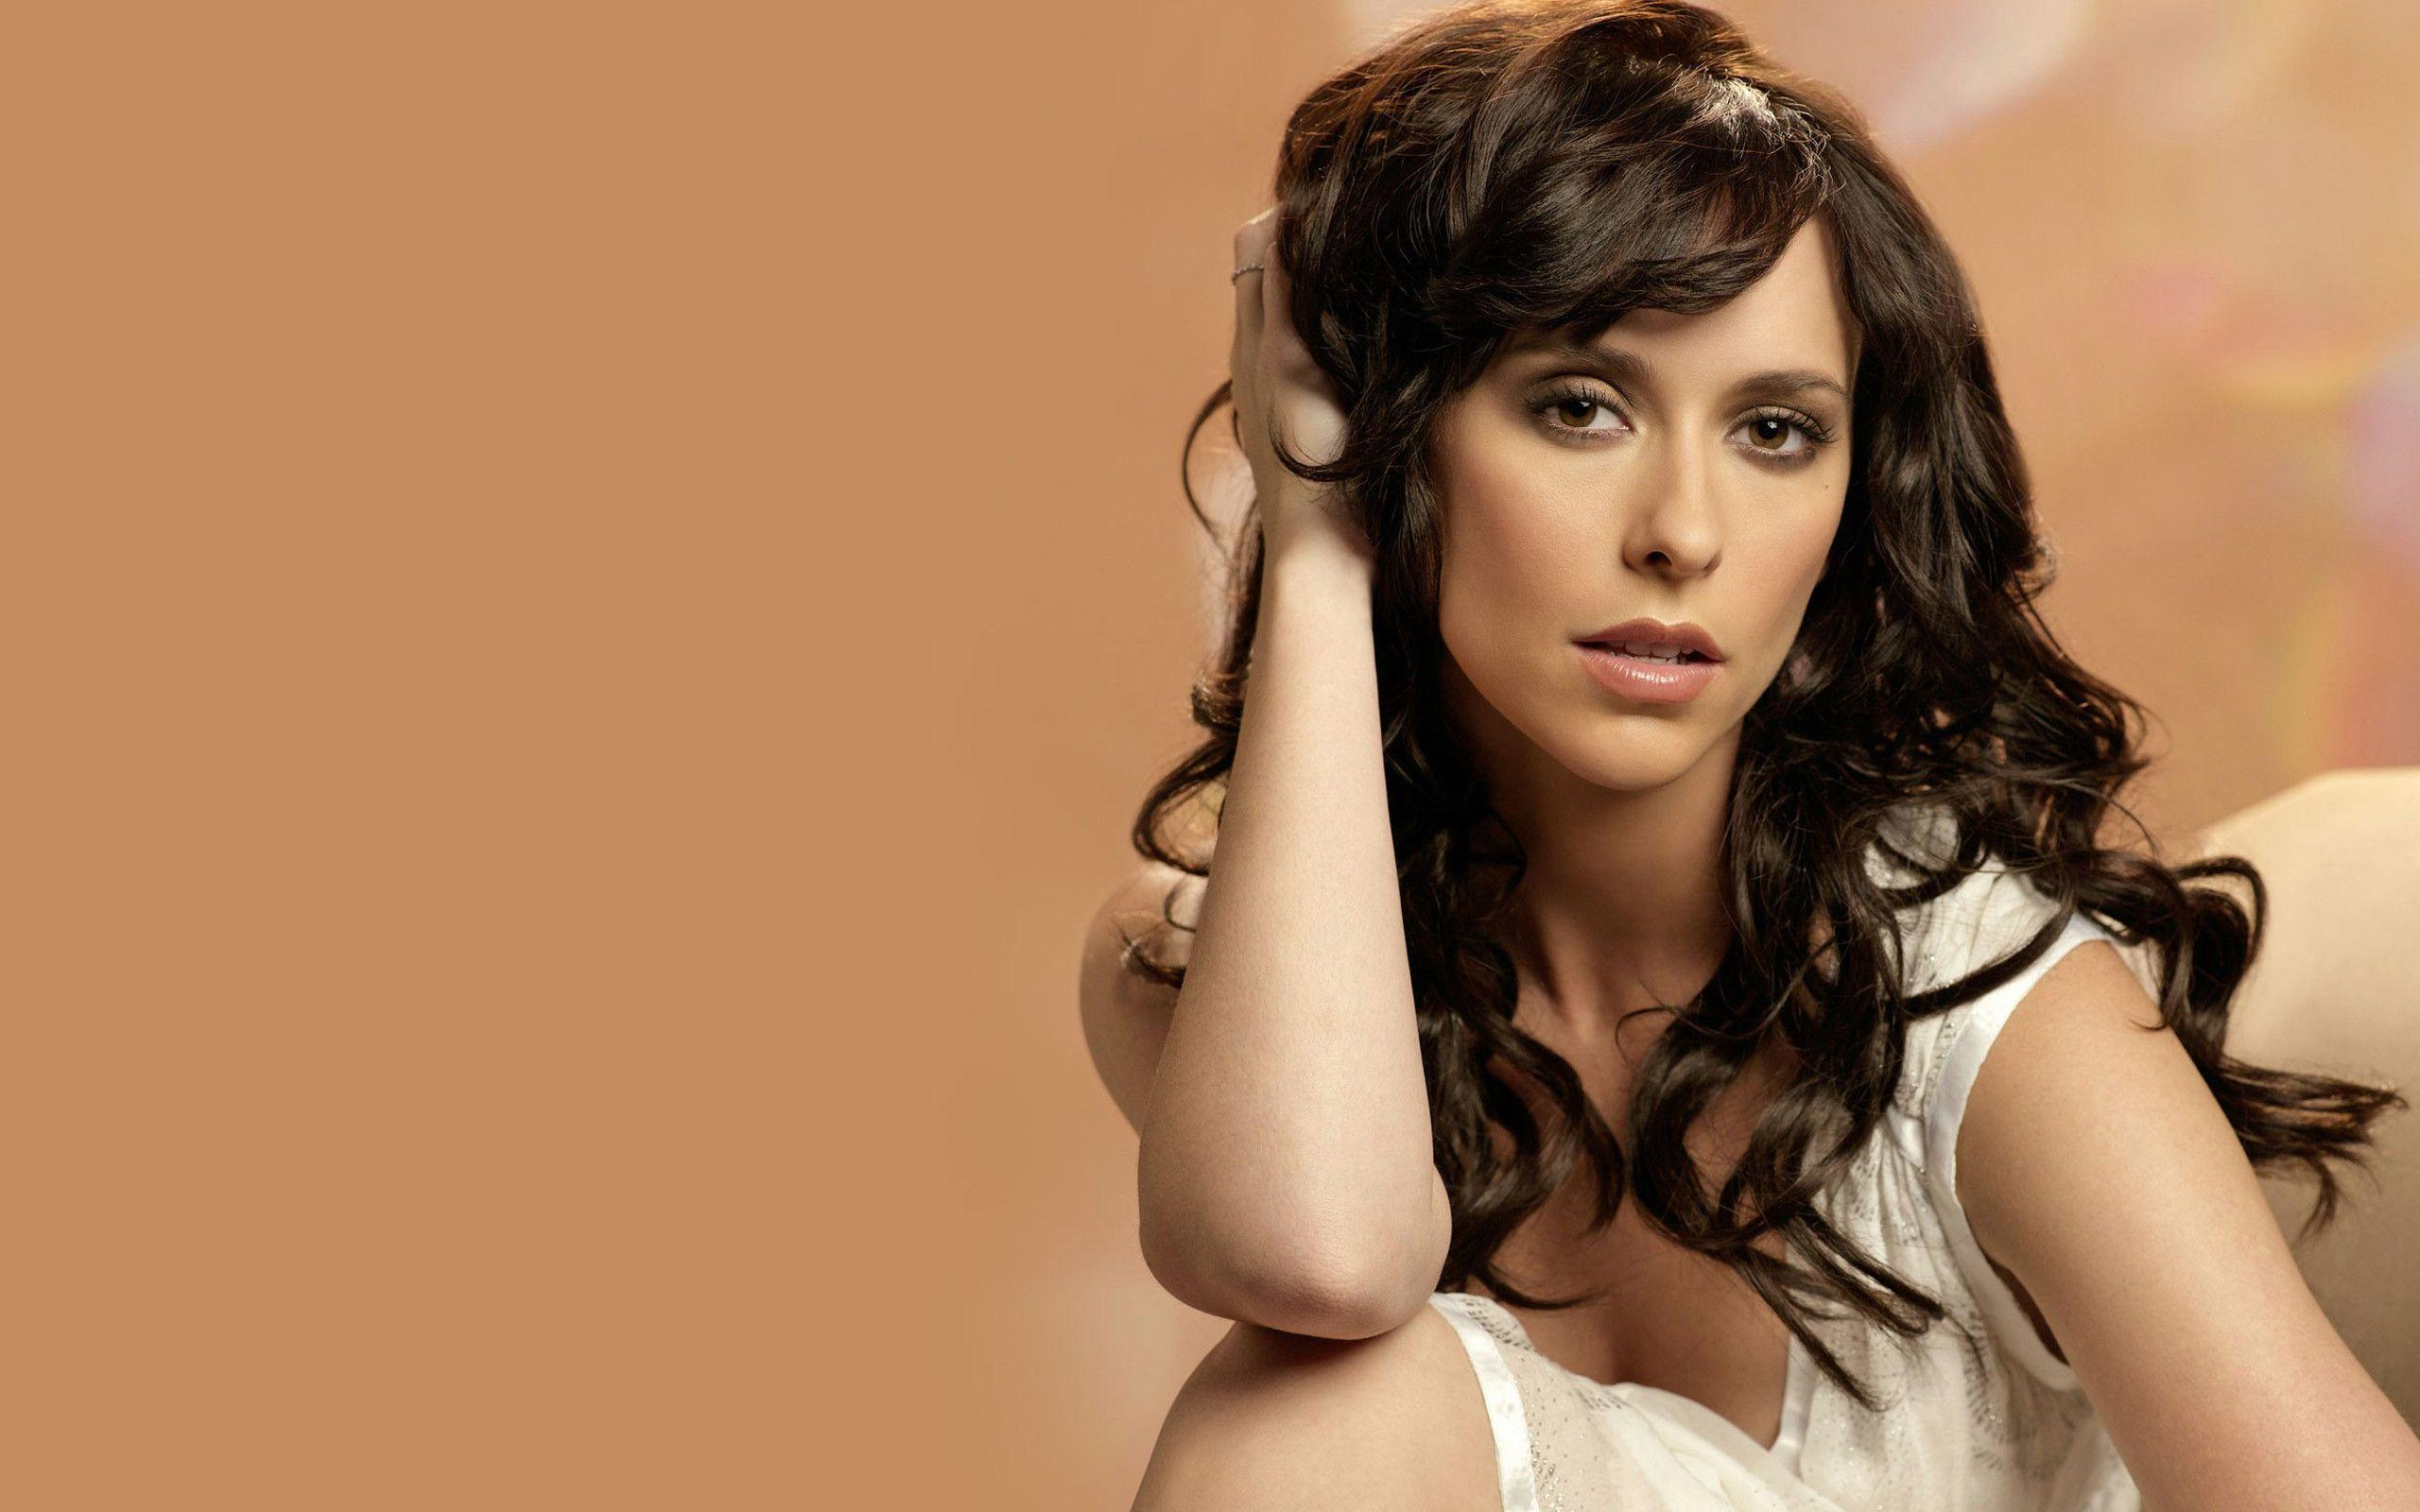 Wallpaper Hd Jennifer Love : Jennifer Love Hewitt HD Wallpapers - Wallpaper cave